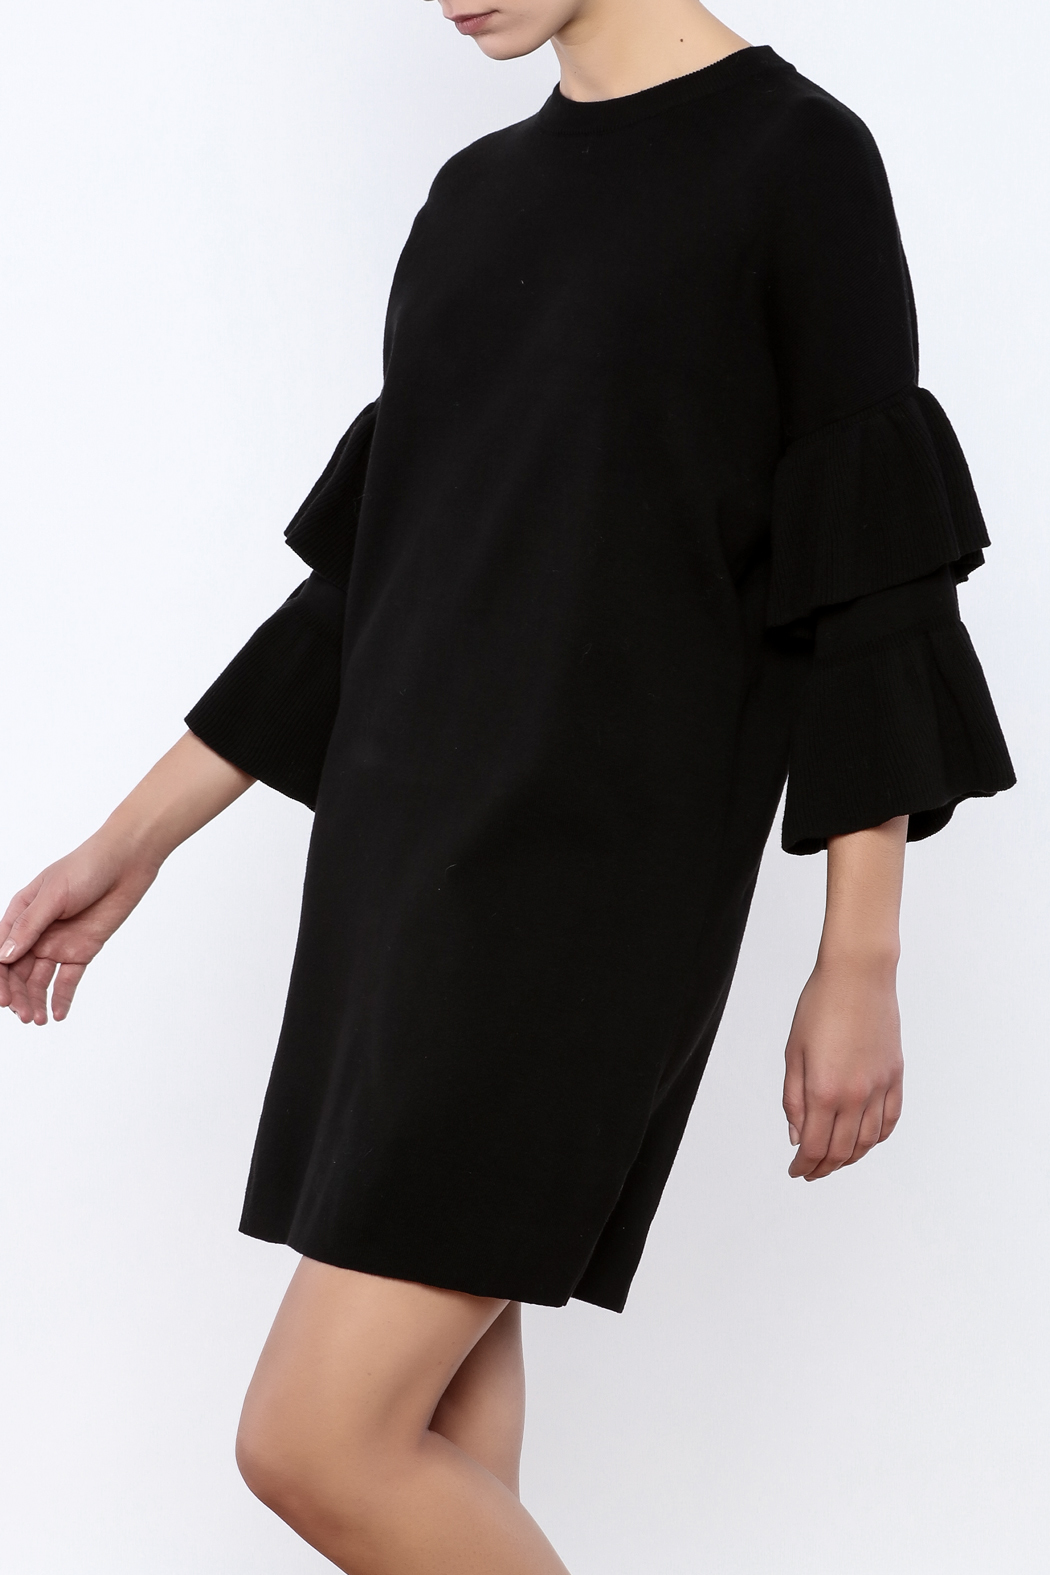 Do & Be Butterfly Sleeve Dress - Main Image